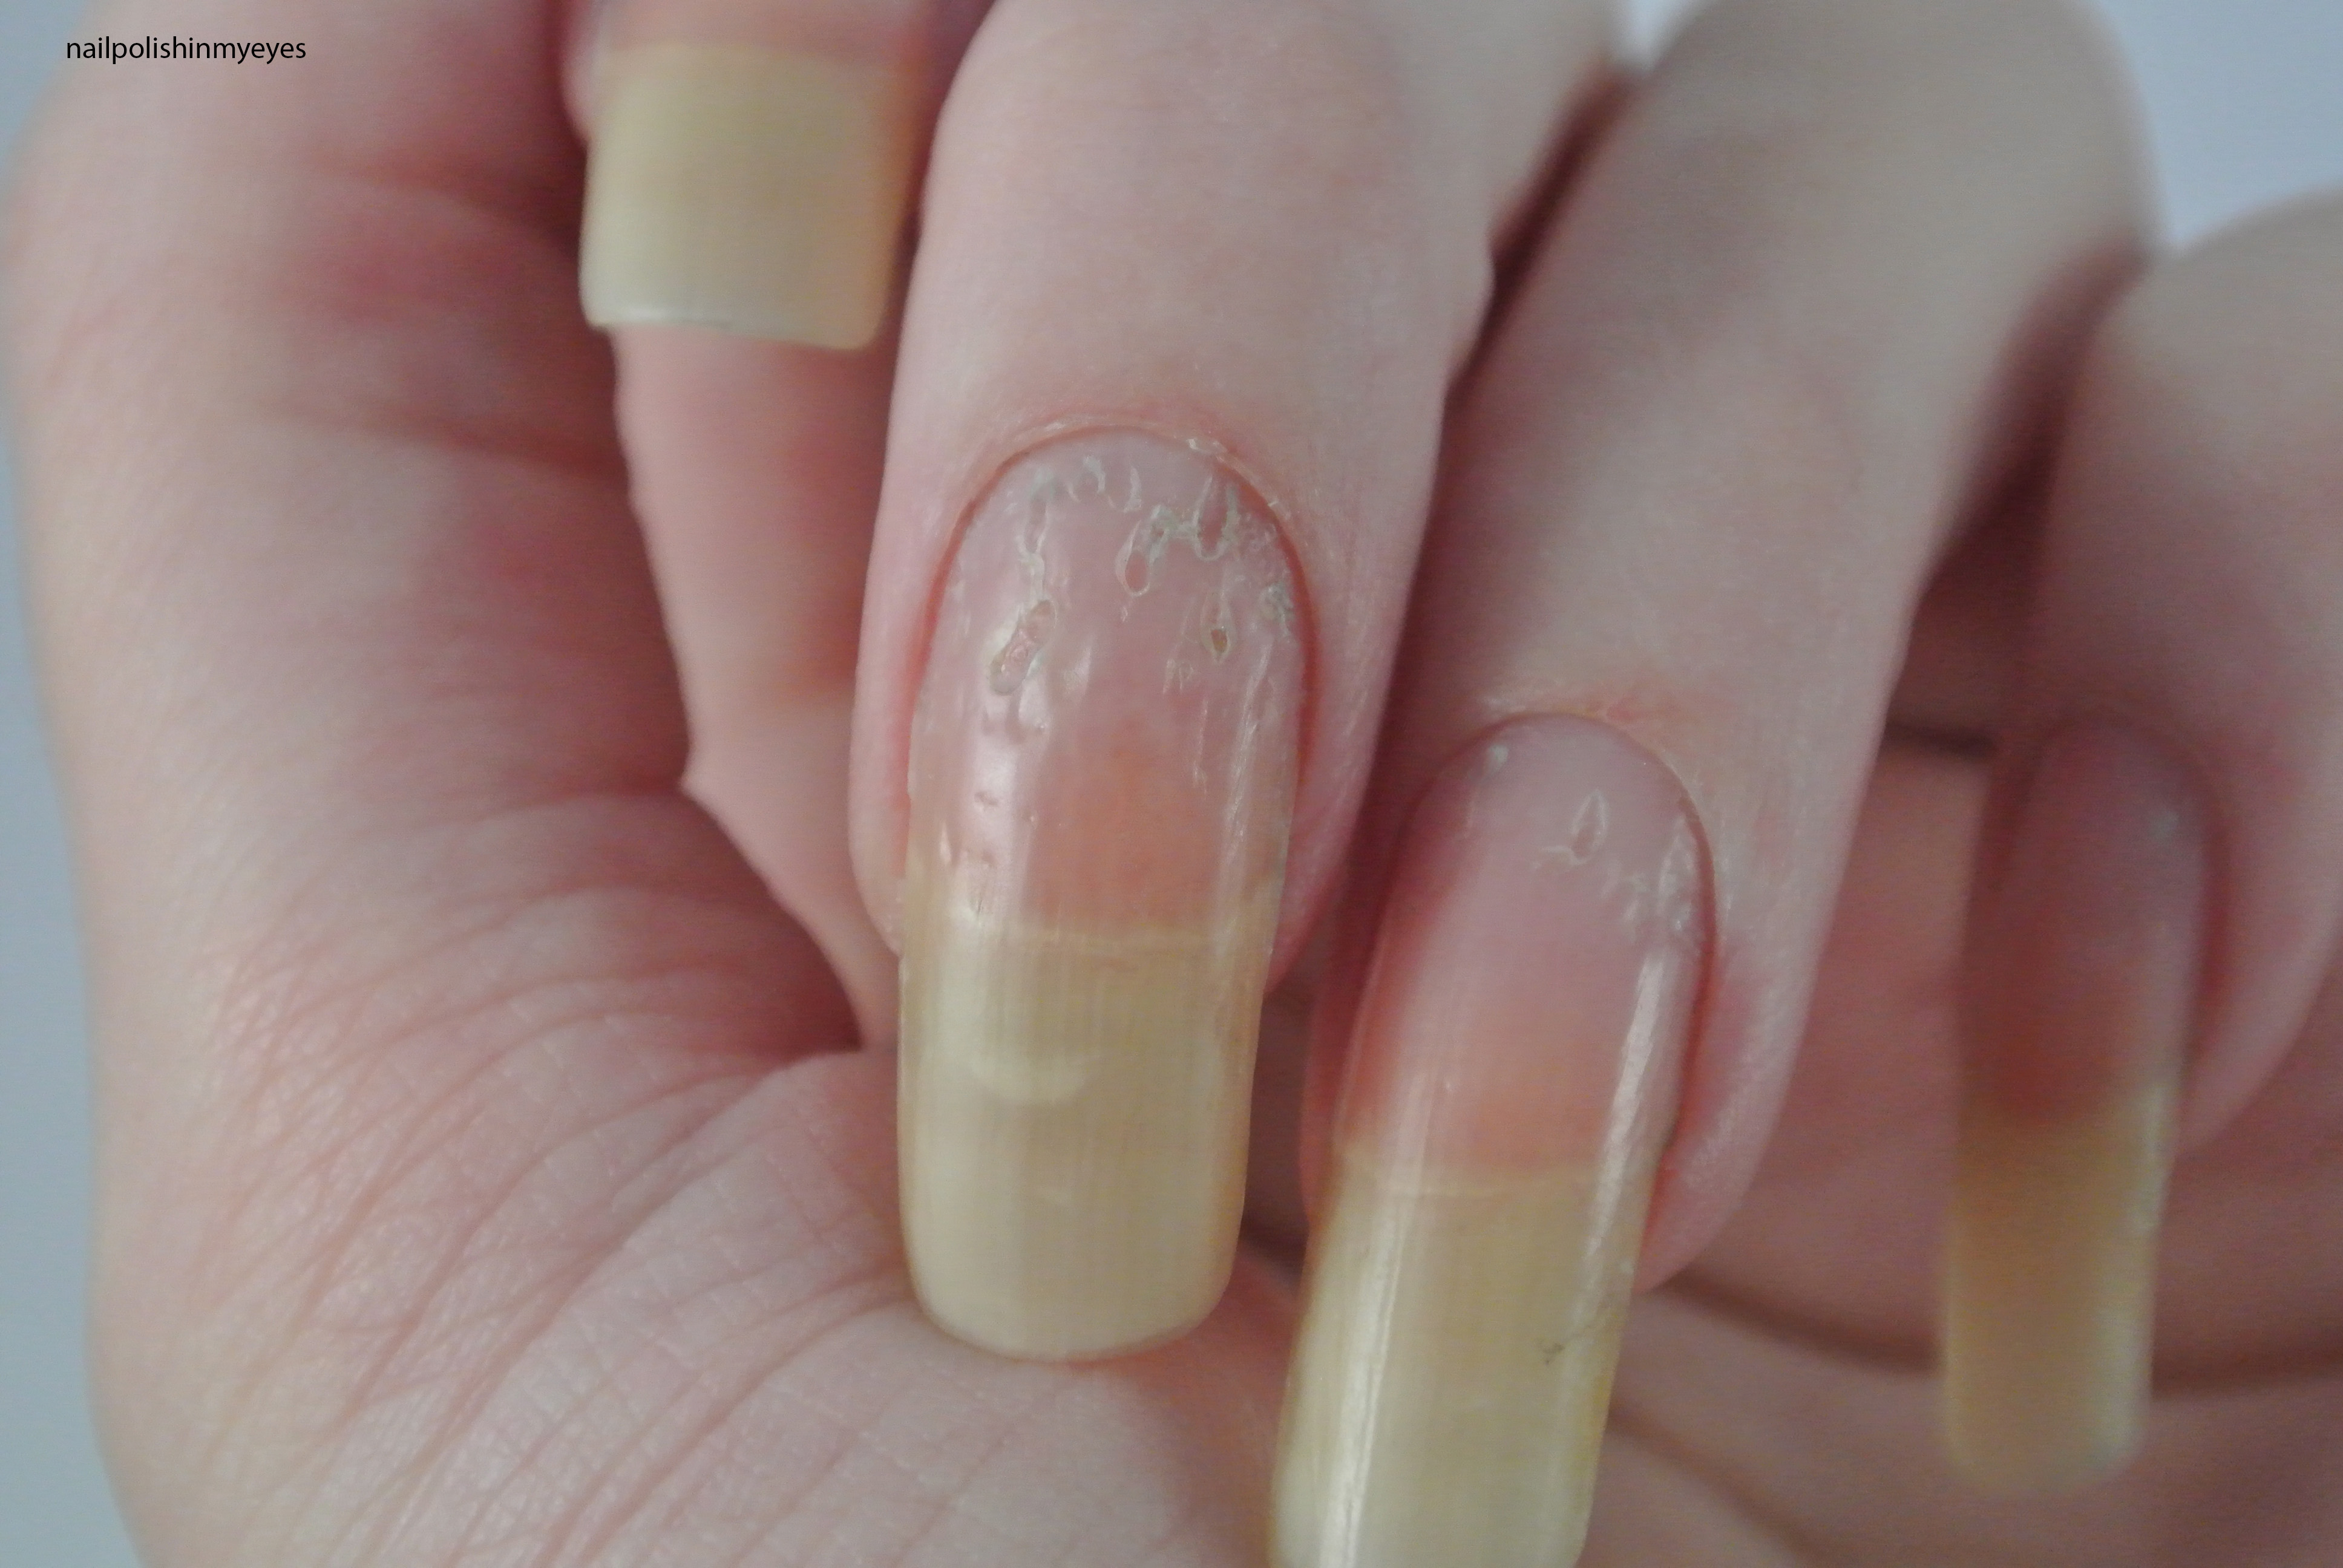 How eczema affected my nails… | Nail Polish in my Eyes